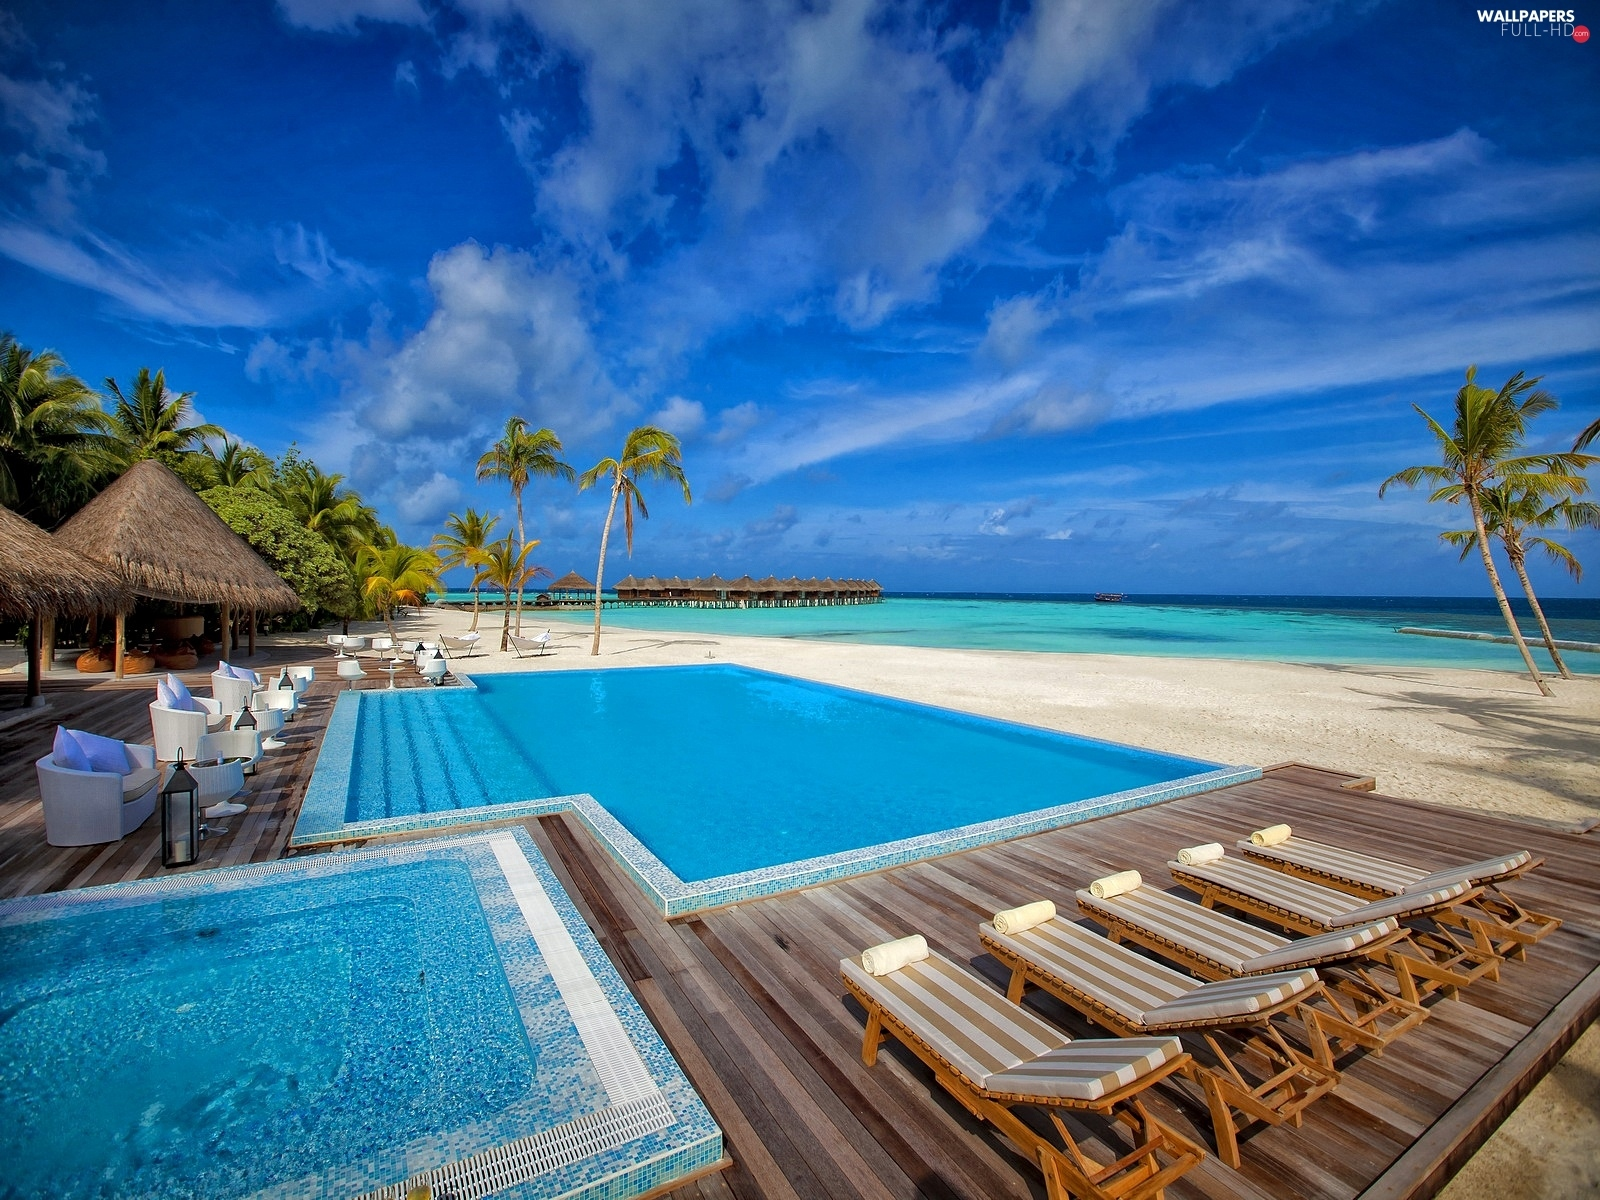 Houses, deck chair, Pool, Palms, sea